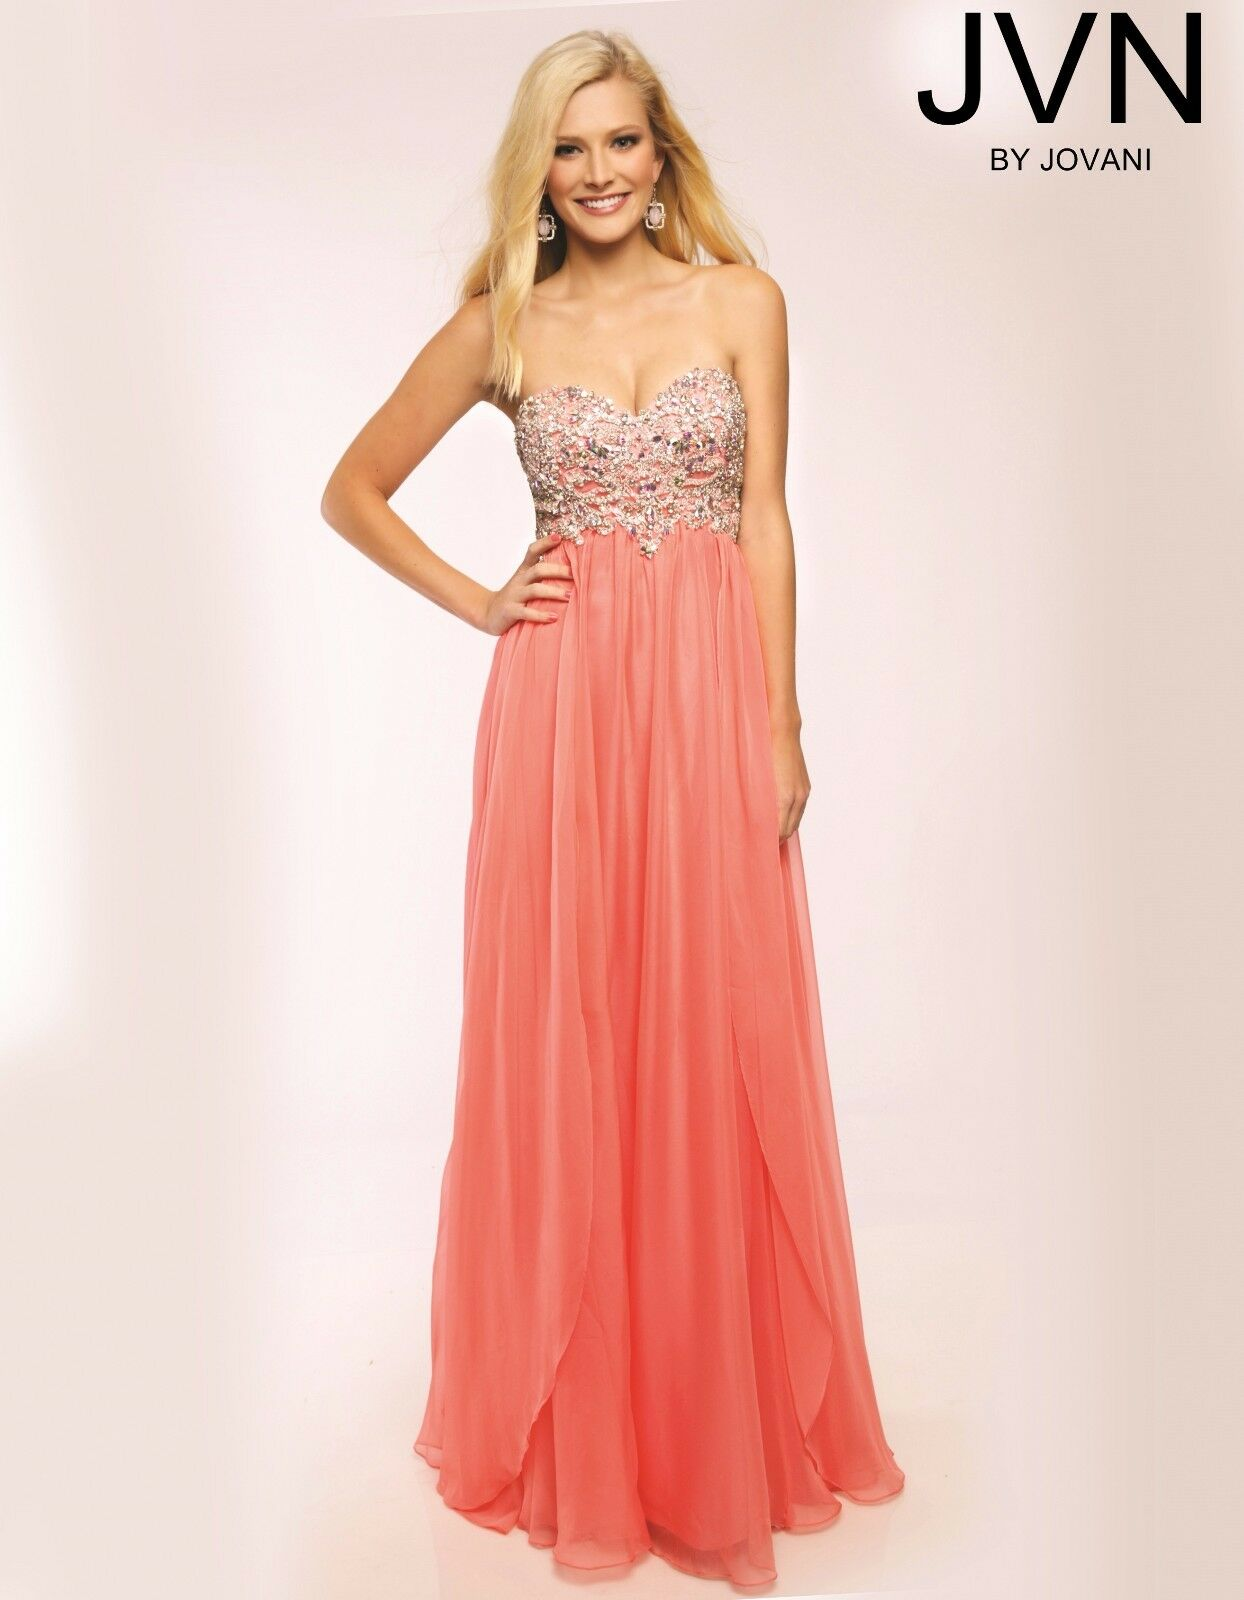 Jovani Coral Strapless Sweetheart Embellished Bodice Prom Dress Size 8 NWT